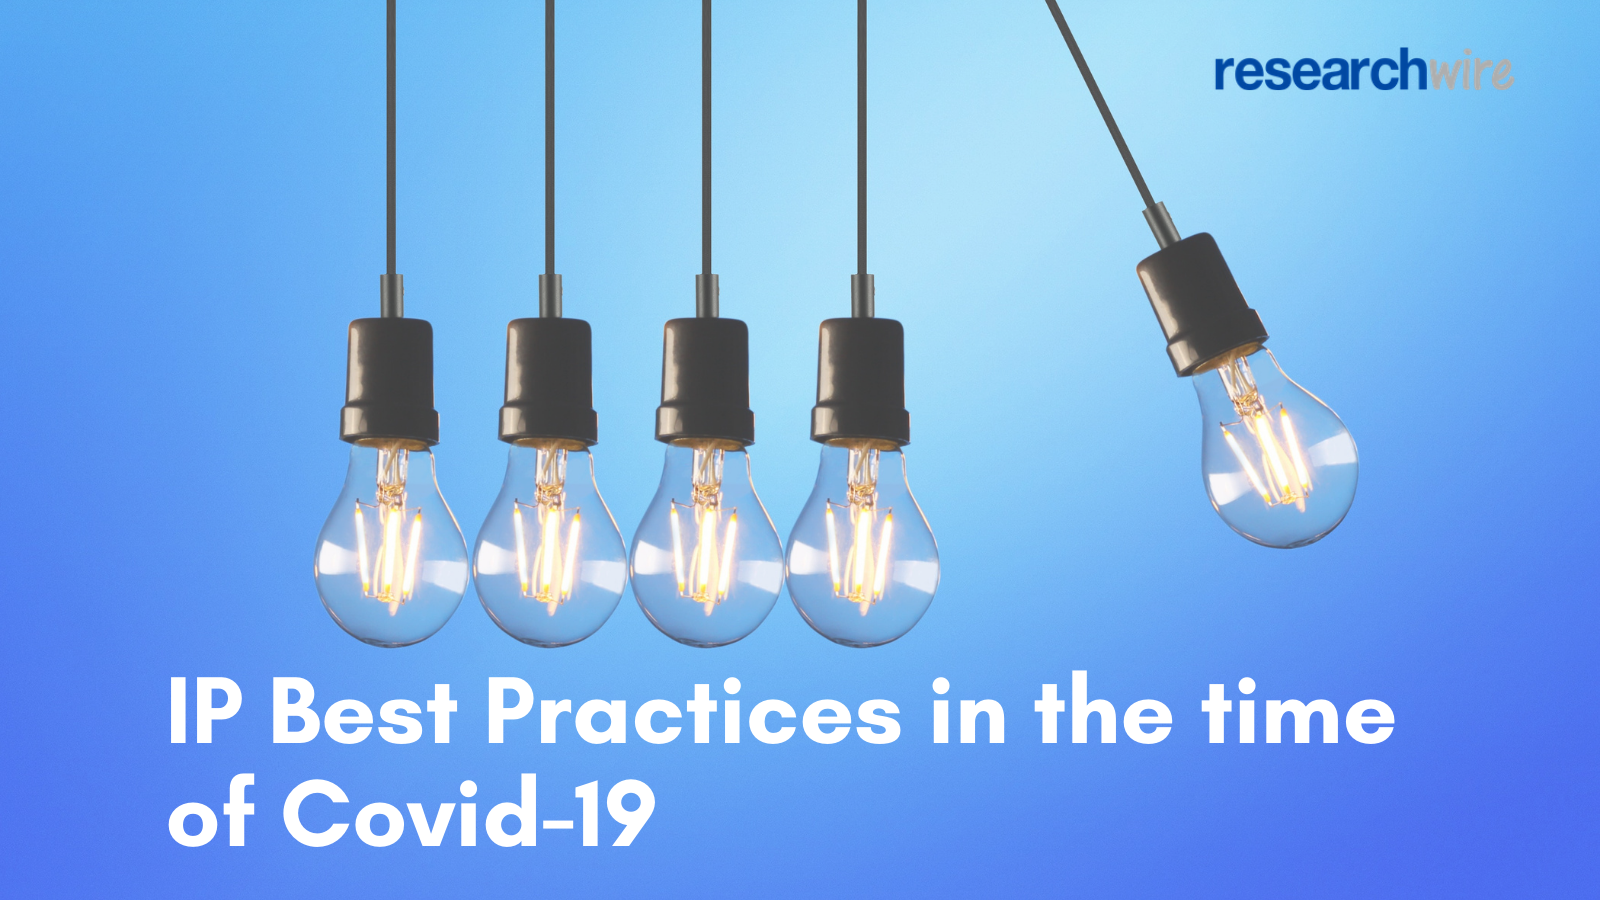 IP Best Practices in the time of Covid-19